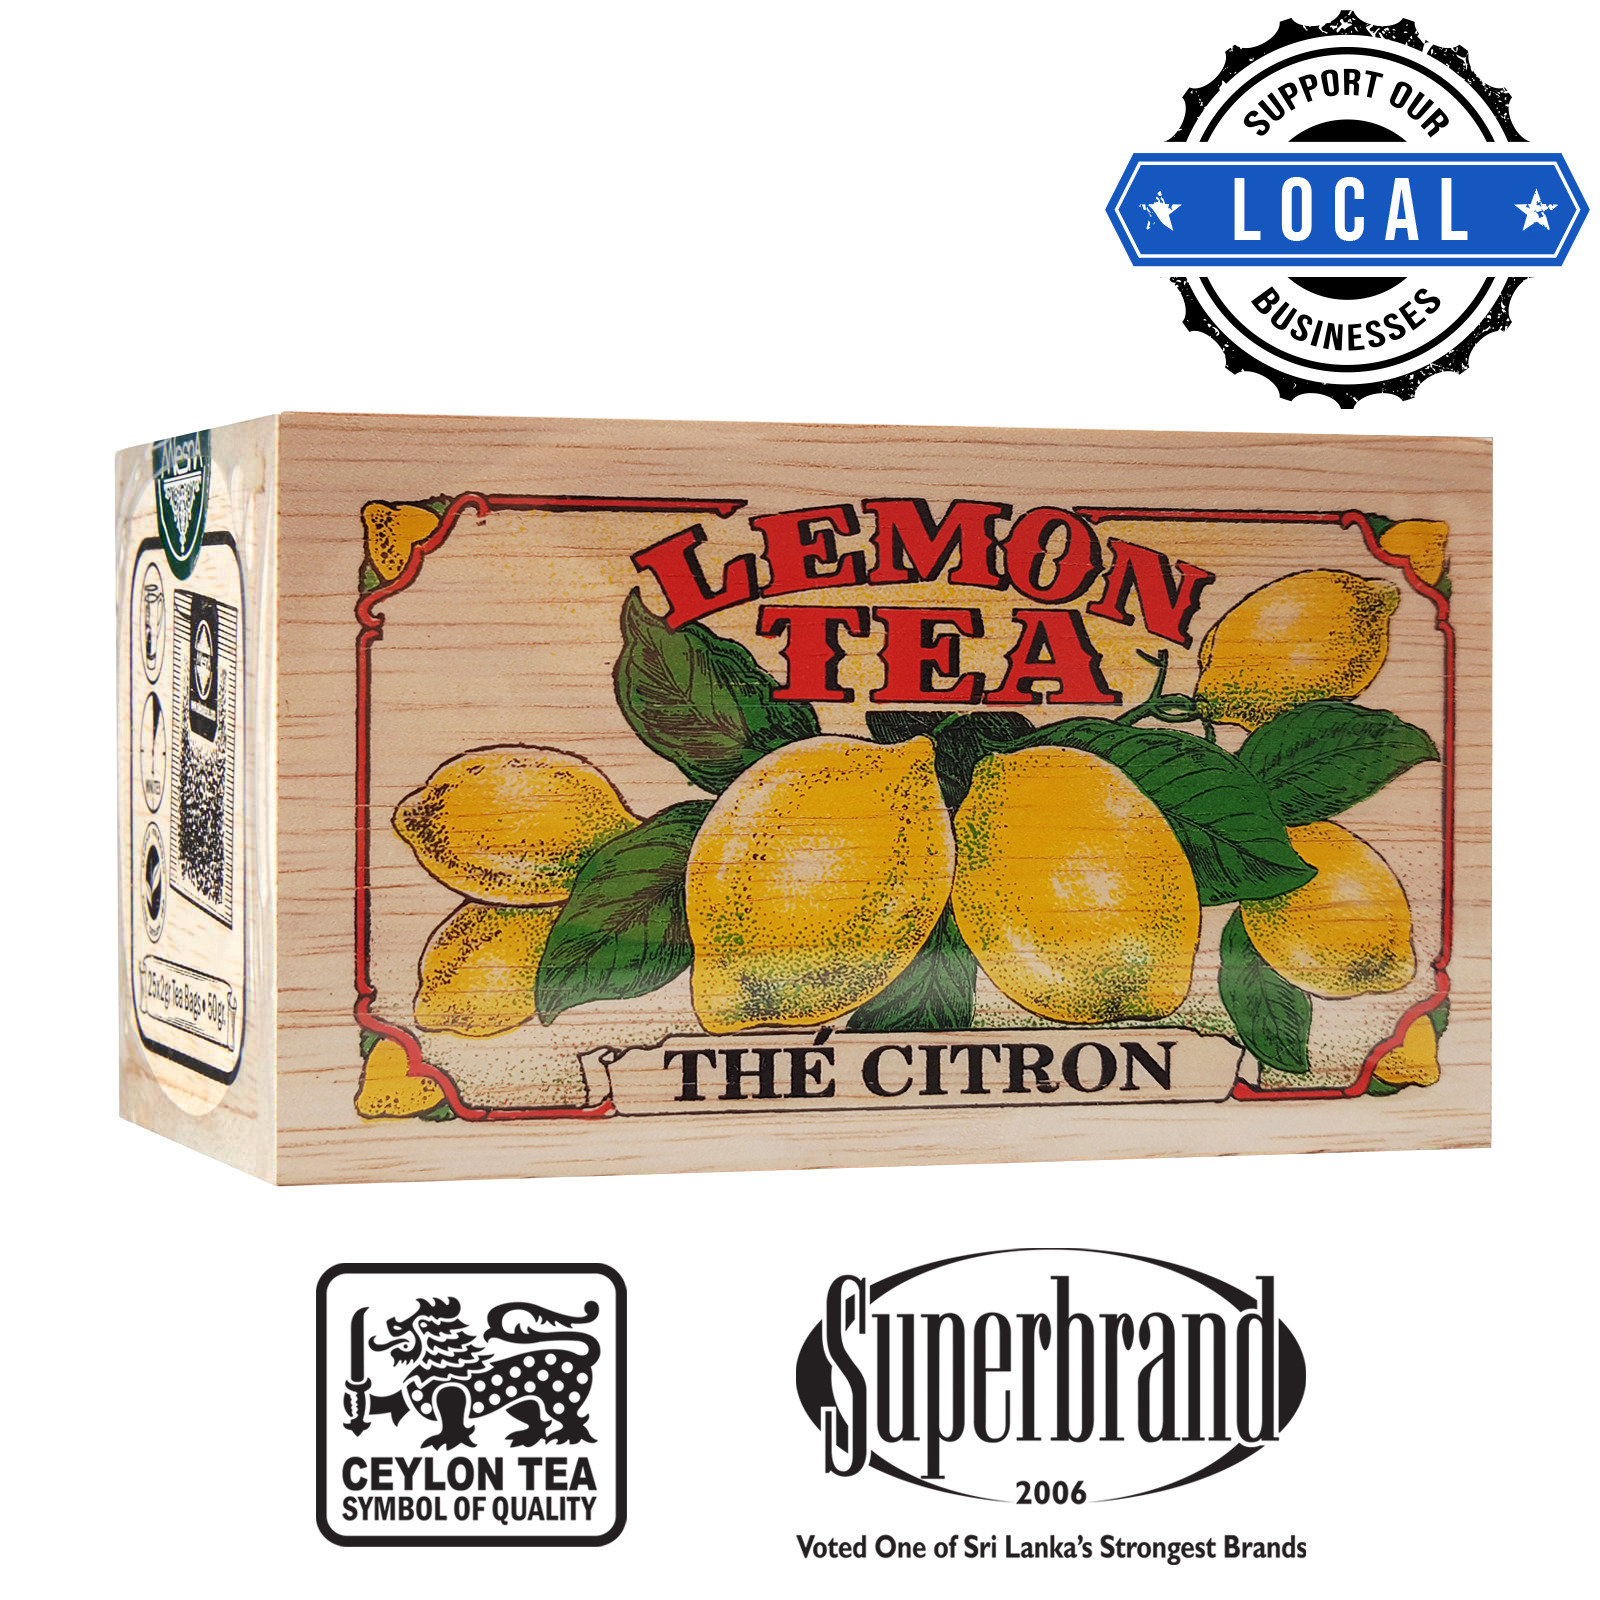 Mlesna Tea Wooden Box - Lemon Jewel